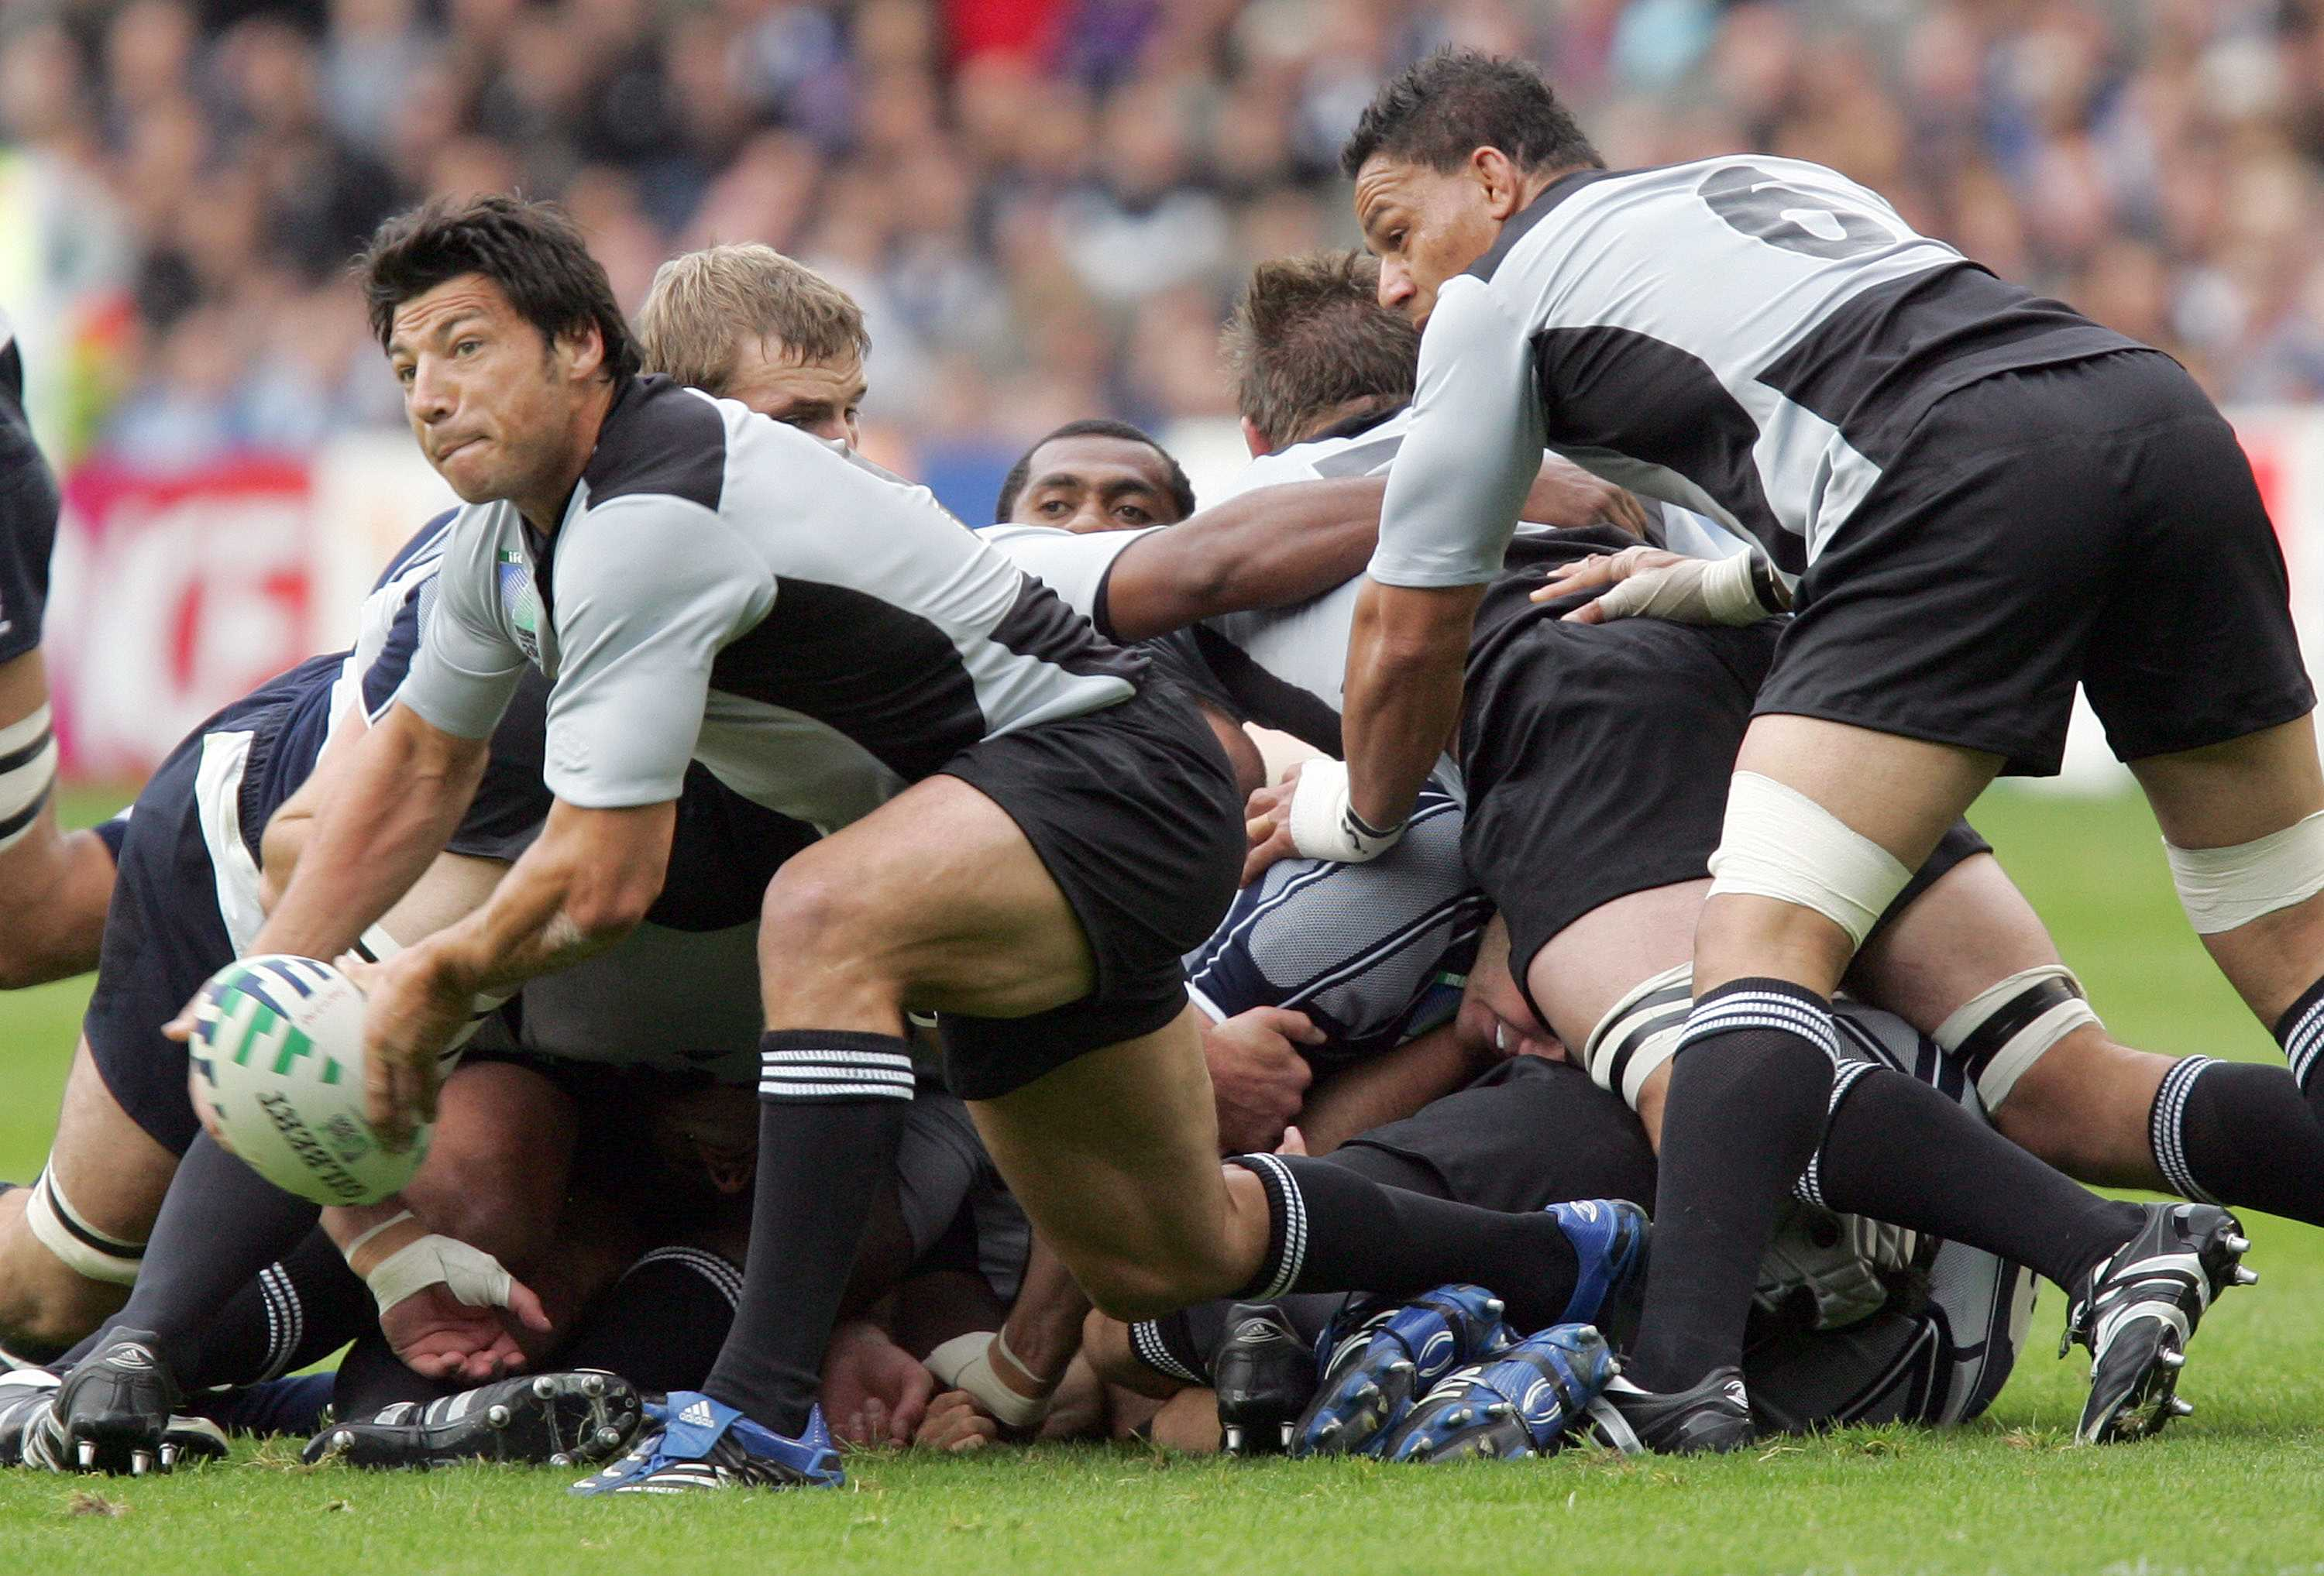 AIG to sponsor 6 New Zealand Rugby Union teams